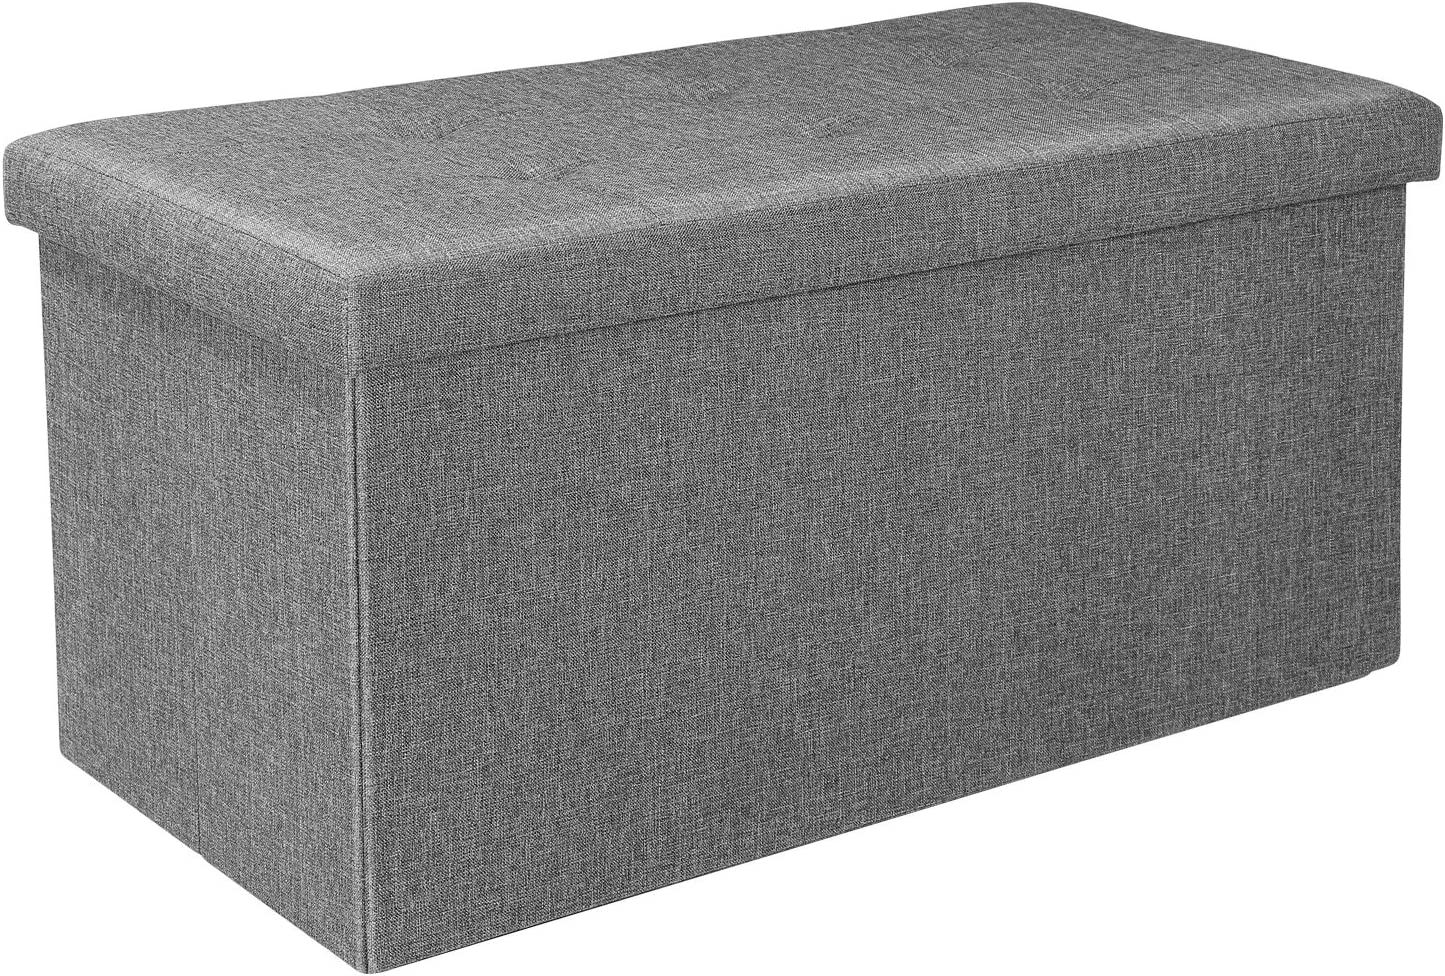 Bonlife Ottoman Storage Boxes,Footstools and Pouffes with Storage Bench Shoe Box Coffee Table Grey, 76.5x38x38cm Linen